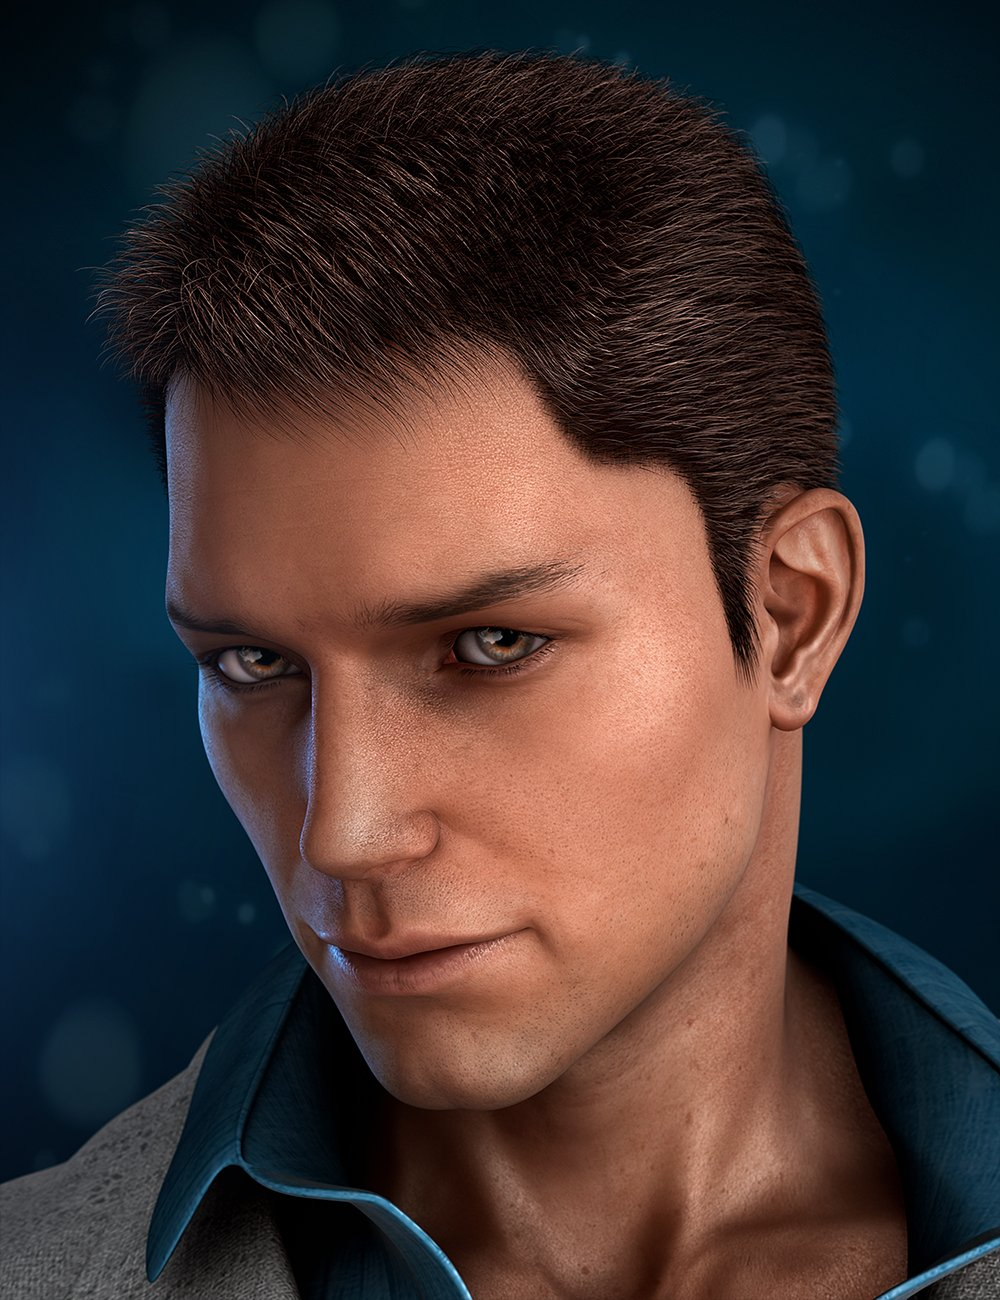 Real Short Hair for Genesis 2 Male(s) by: Laticis Imagery, 3D Models by Daz 3D